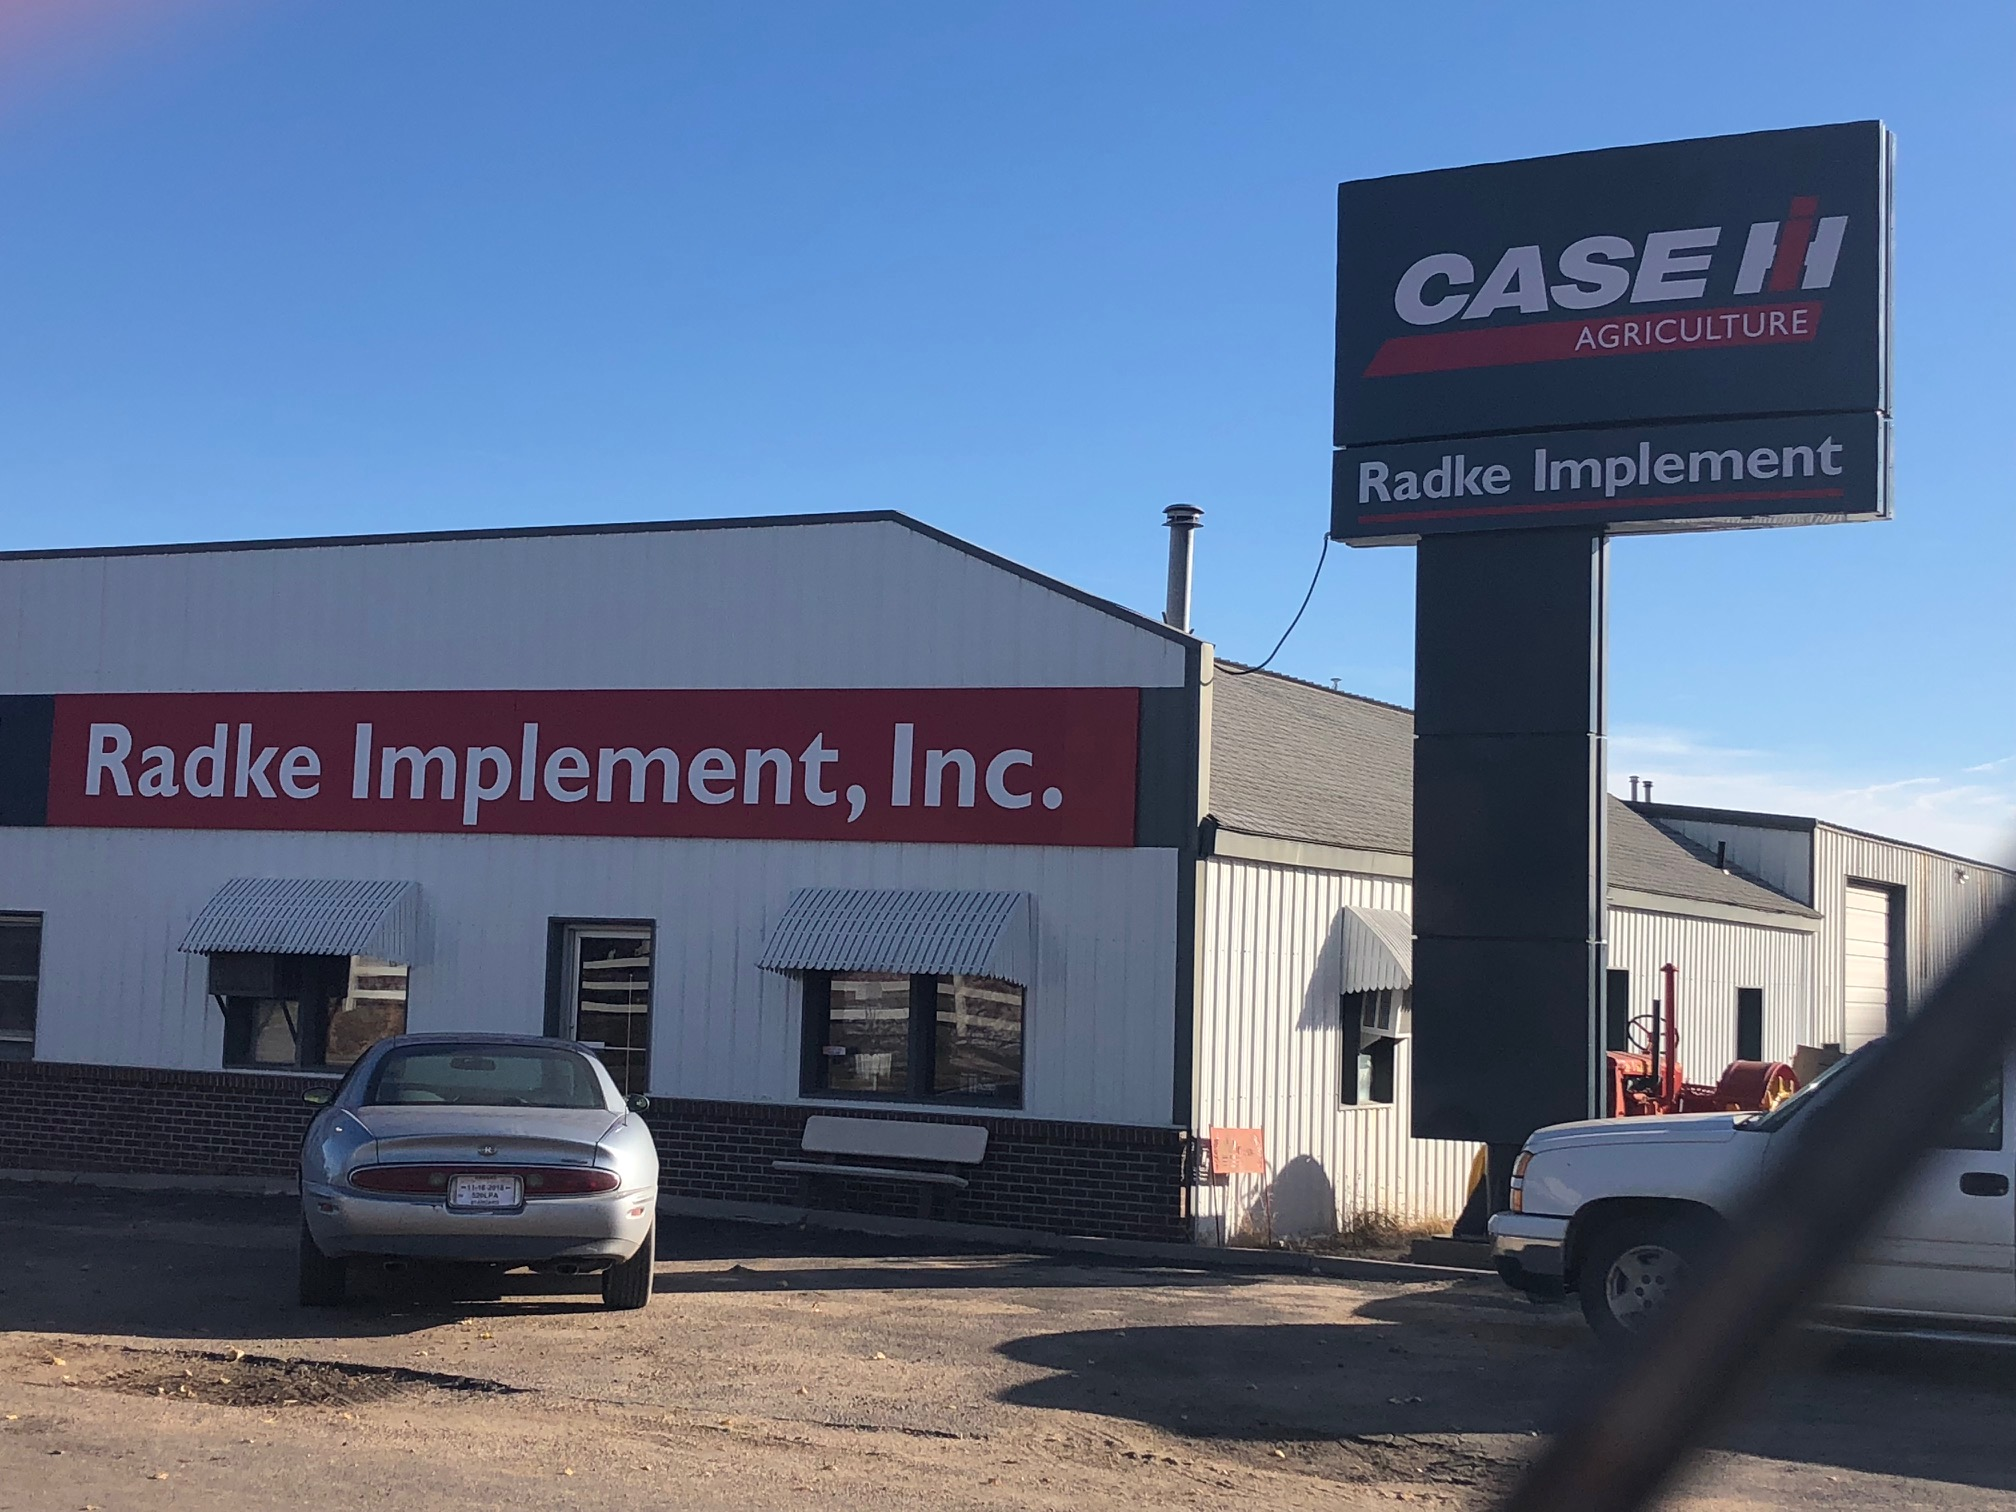 Radke Implement, Inc